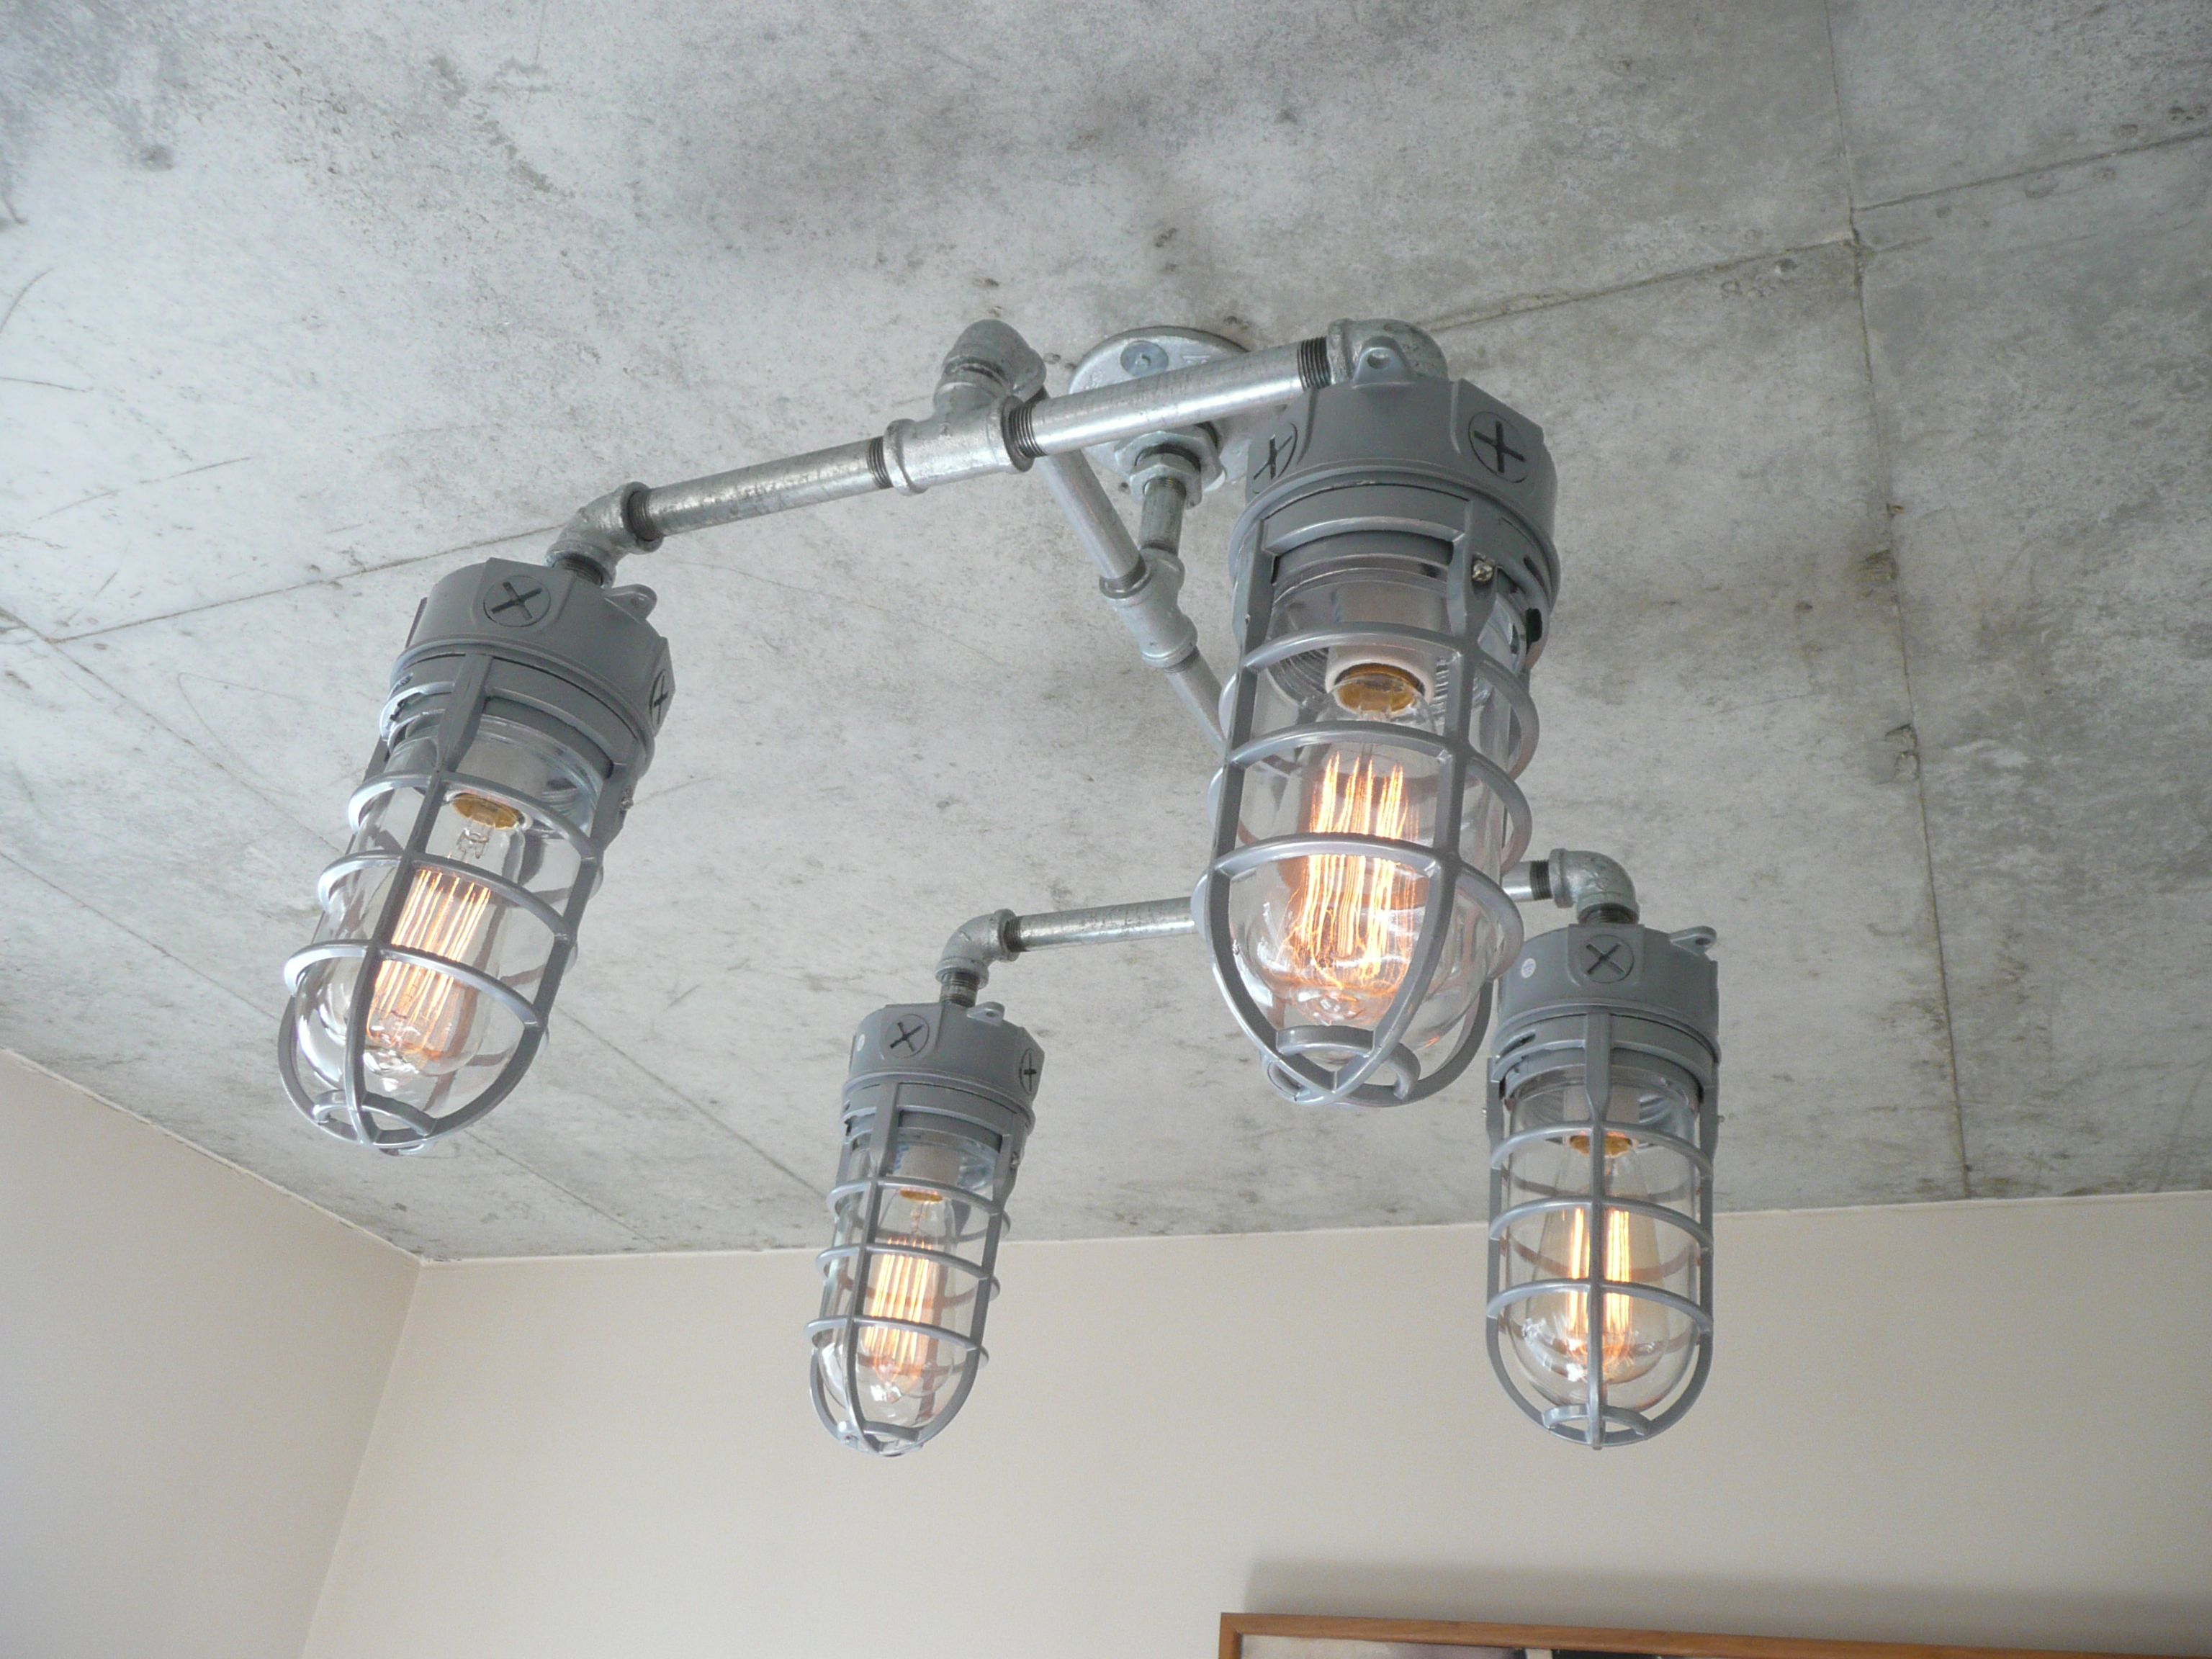 Industrial lighting using galvanized pipe and explosion proof lights